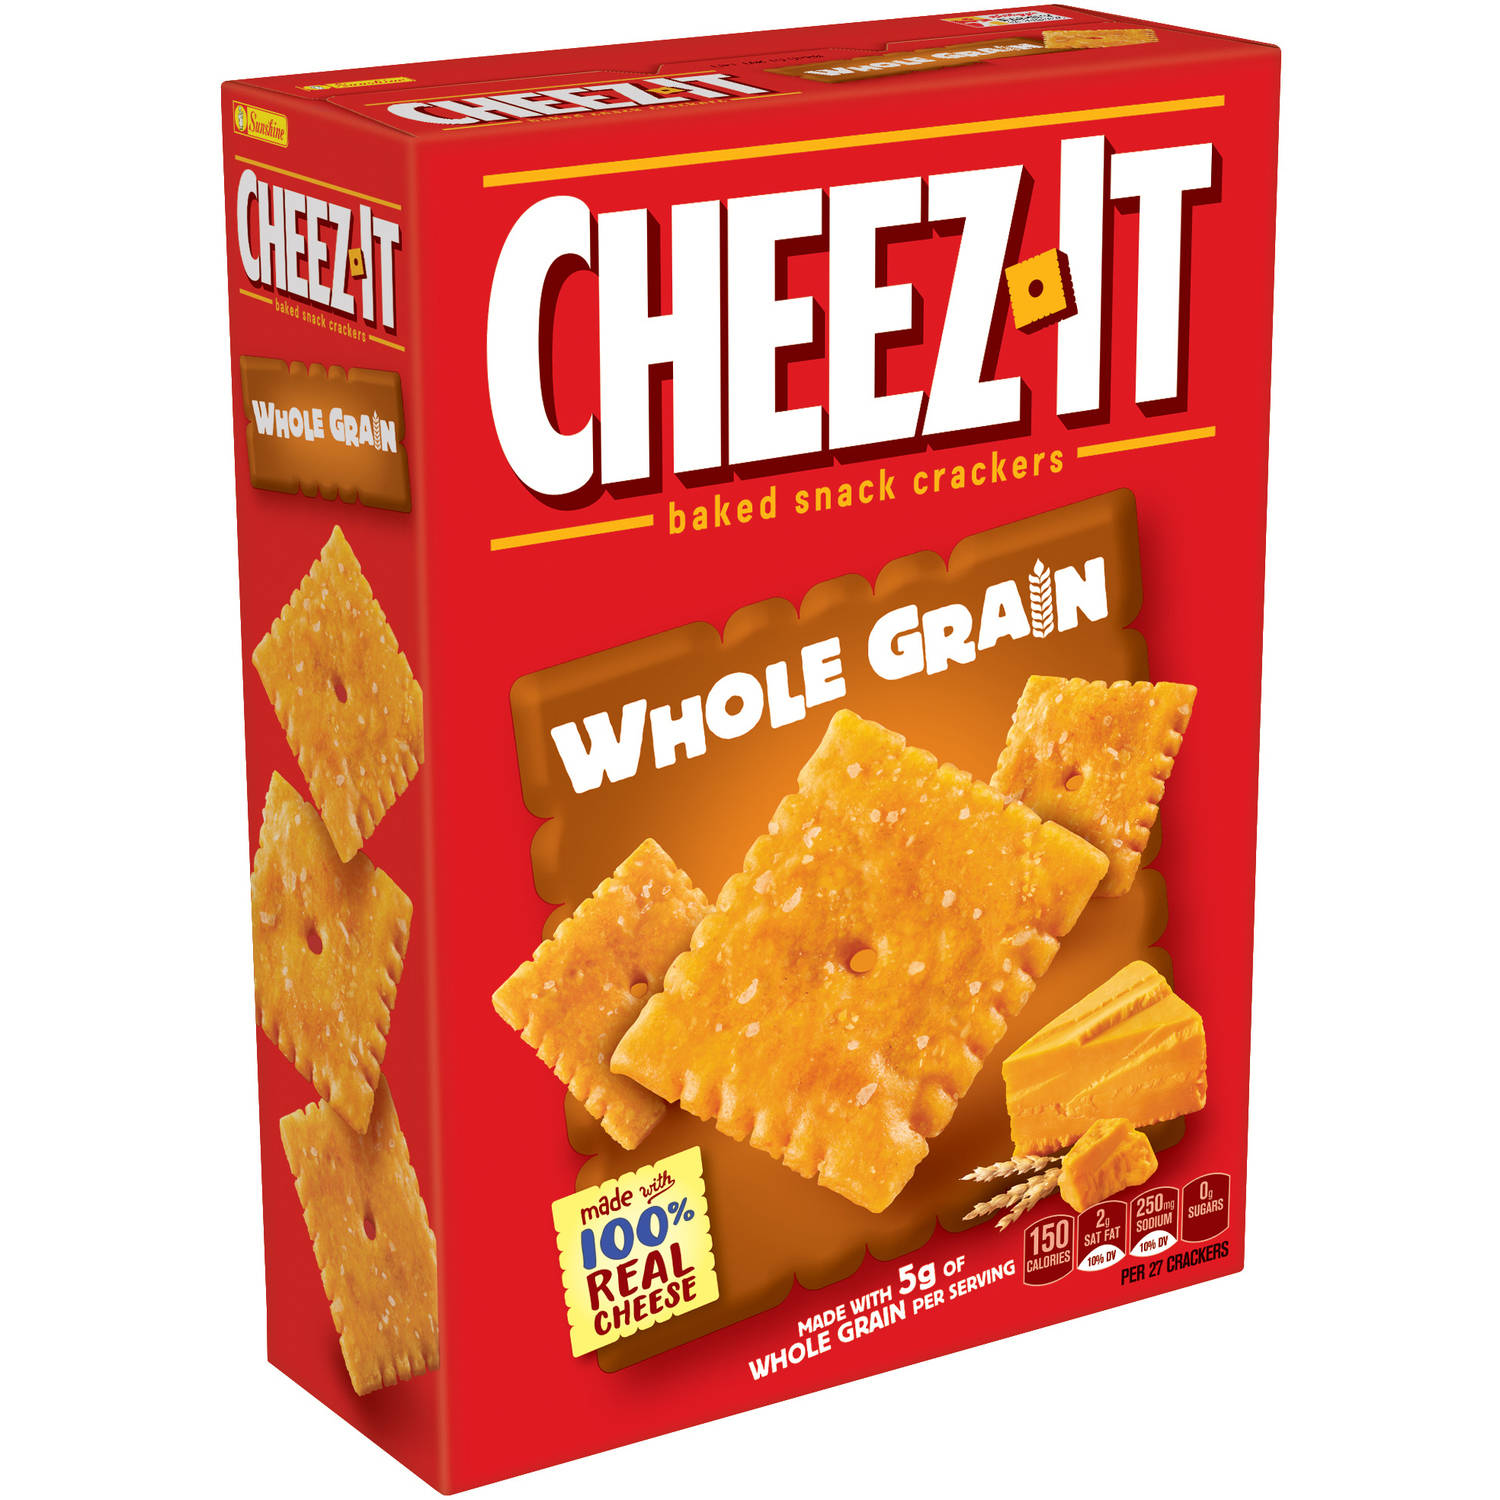 Cheez-It Whole Grain Baked Snack Crackers, 12.4 oz by Sunshine Biscuits, LLC